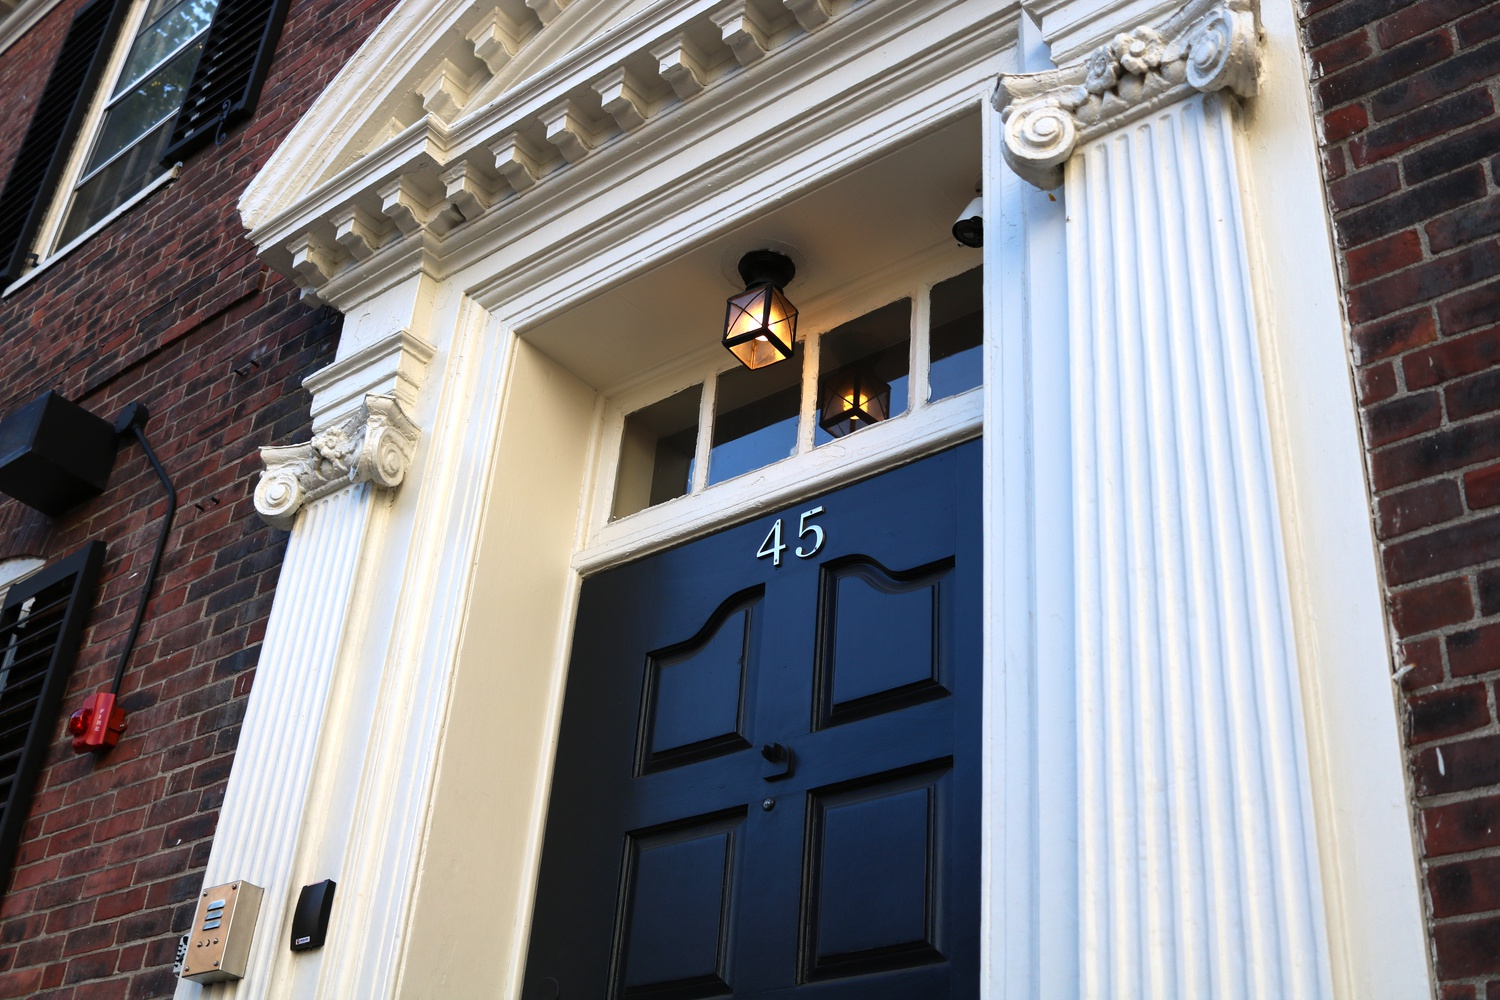 The Hasty Pudding's clubhouse, located in Harvard Square across from The Garage.